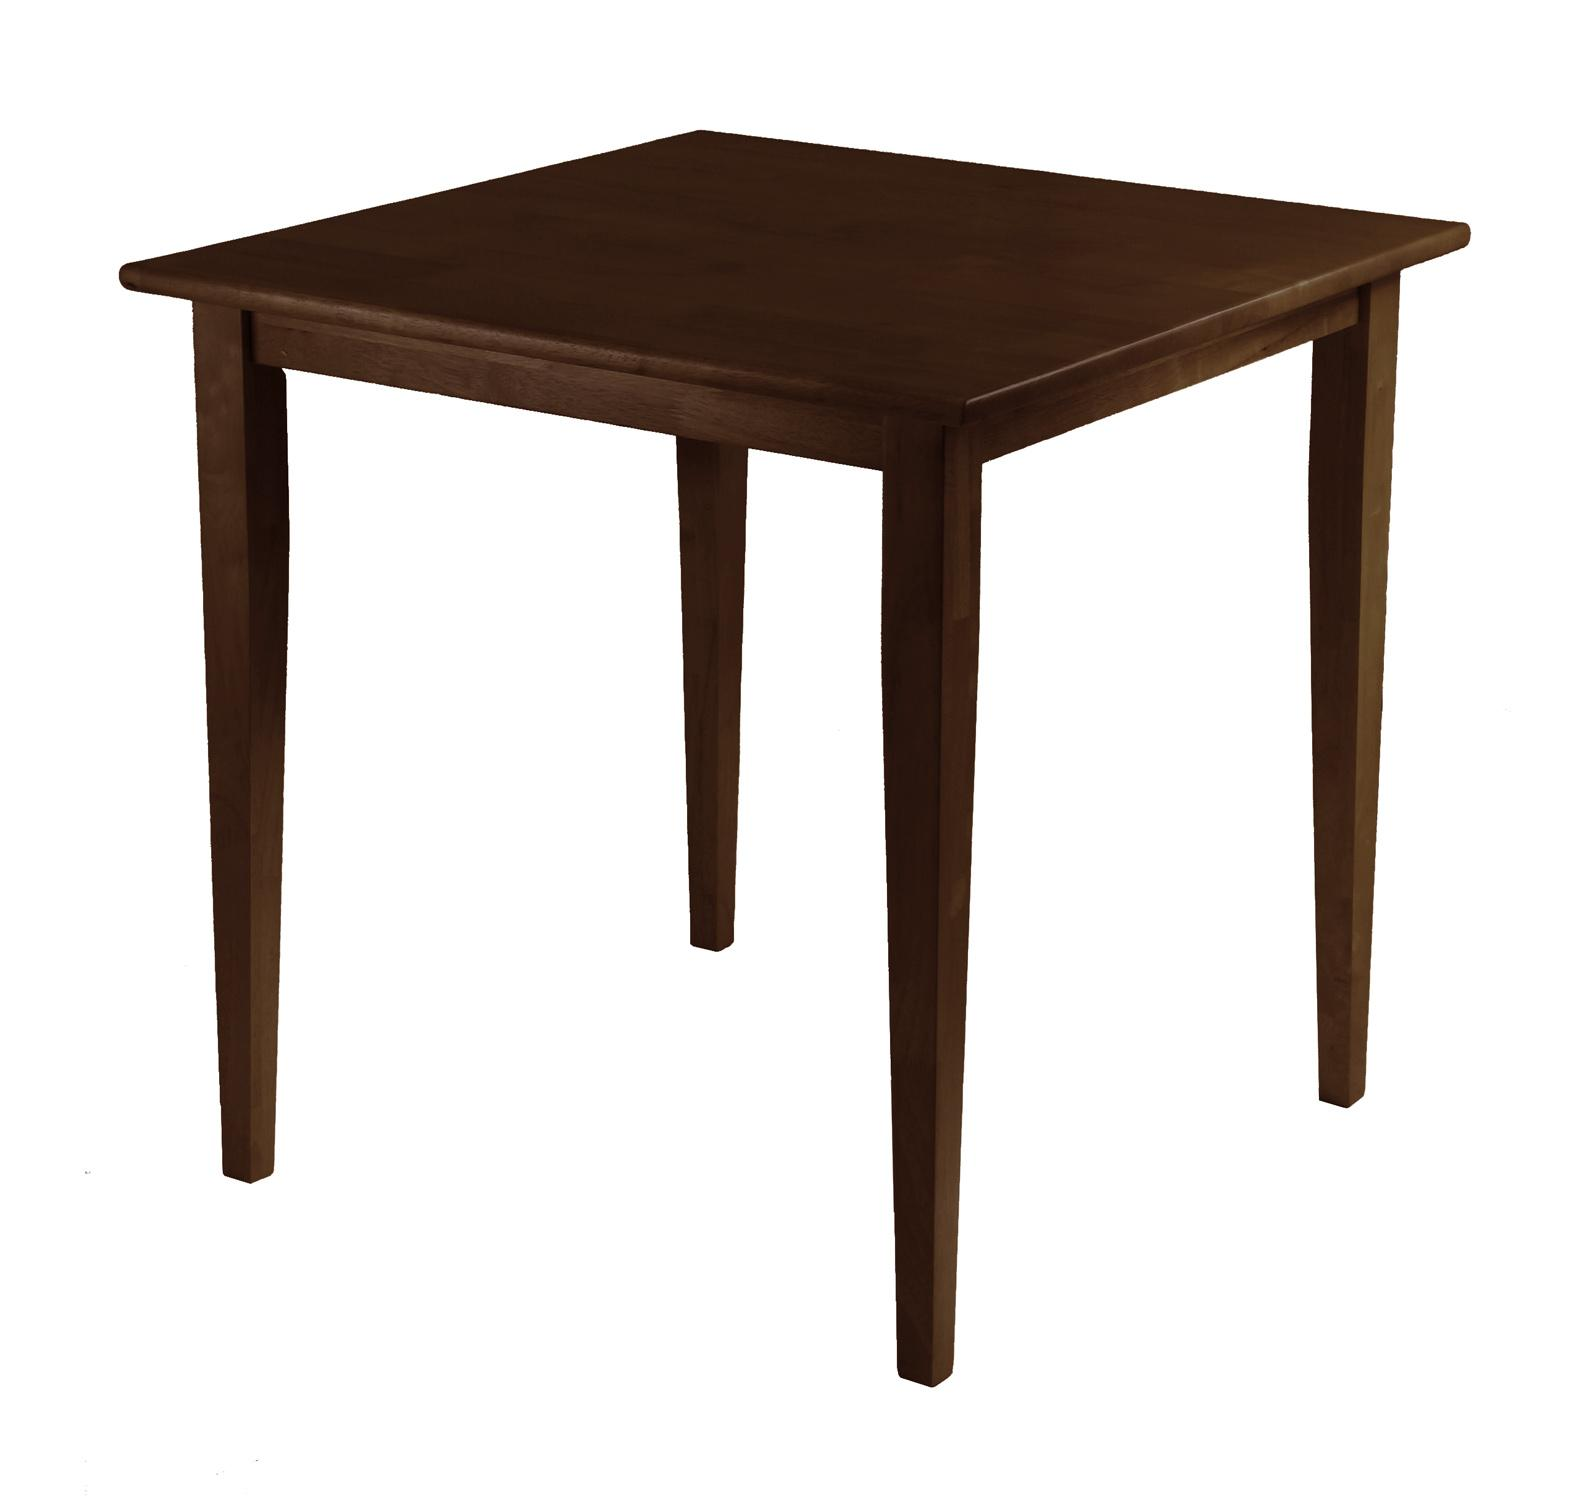 Winsome groveland square dining table shaker leg antique walnut